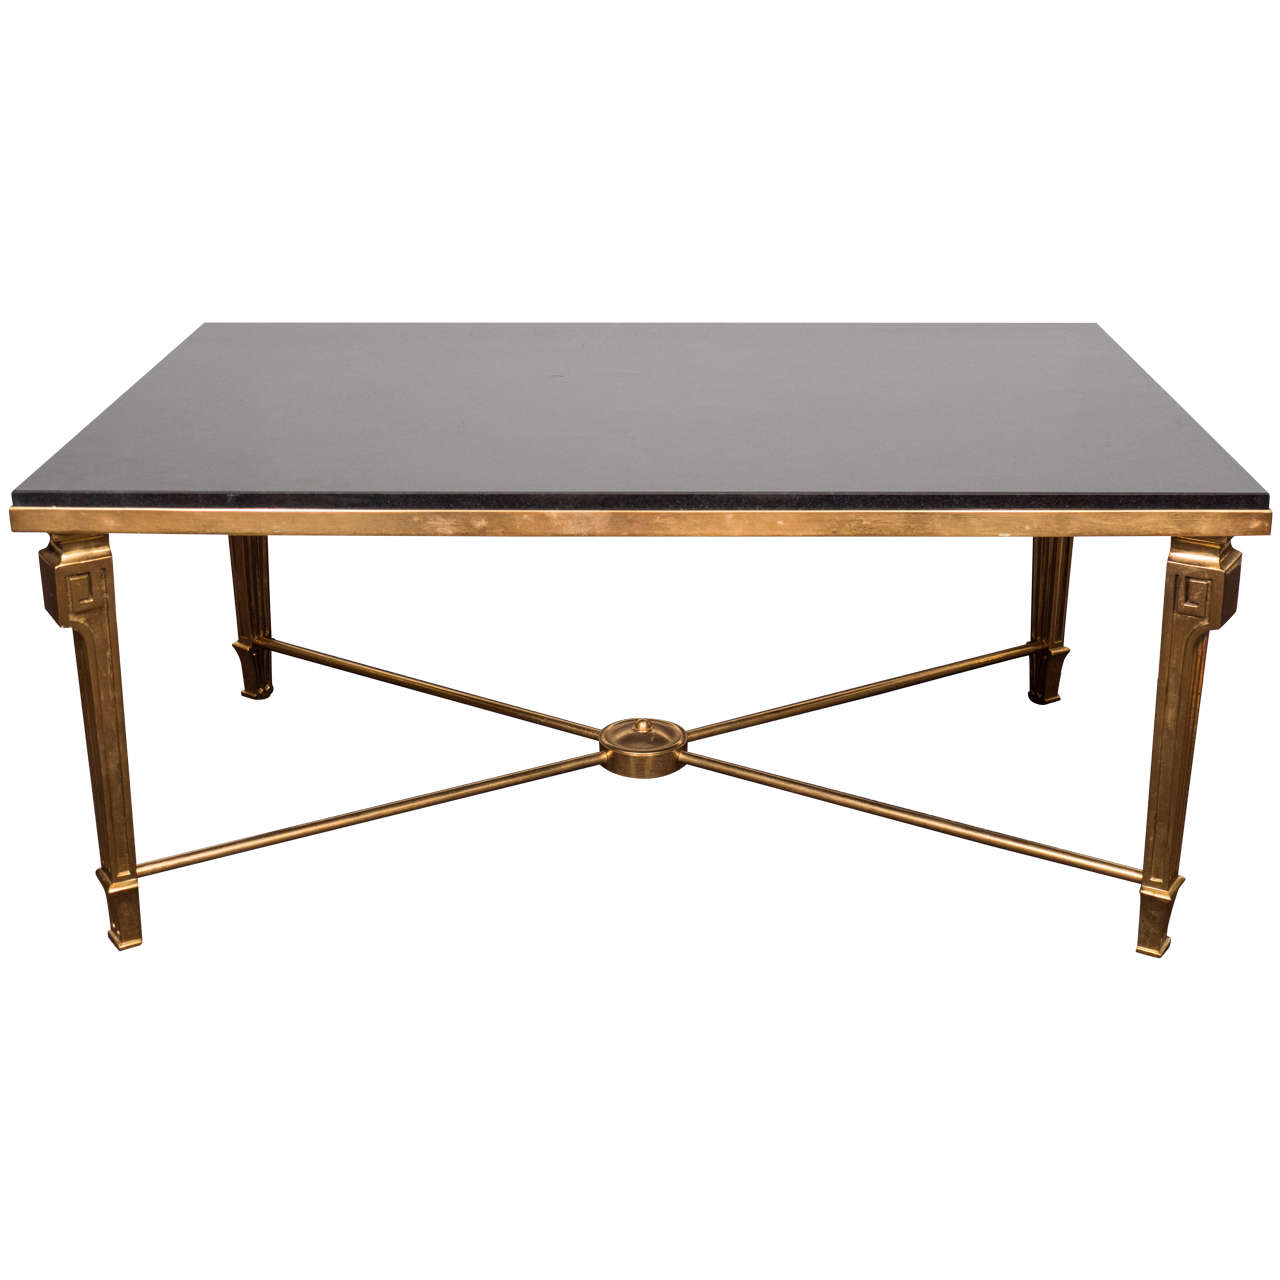 Spectacular Art Moderne Style Bronze Coffee Or Cocktail Table By Maison Jansen At 1stdibs